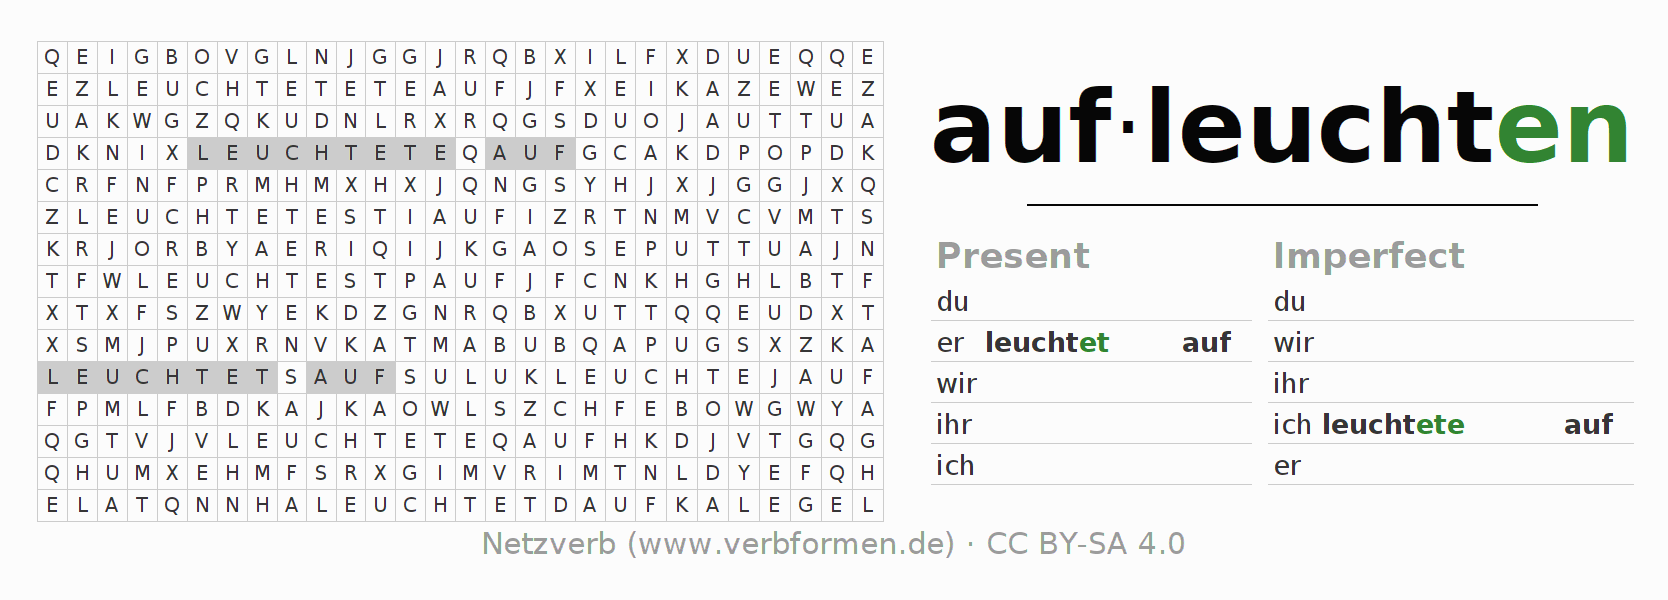 Word search puzzle for the conjugation of the verb aufleuchten (ist)